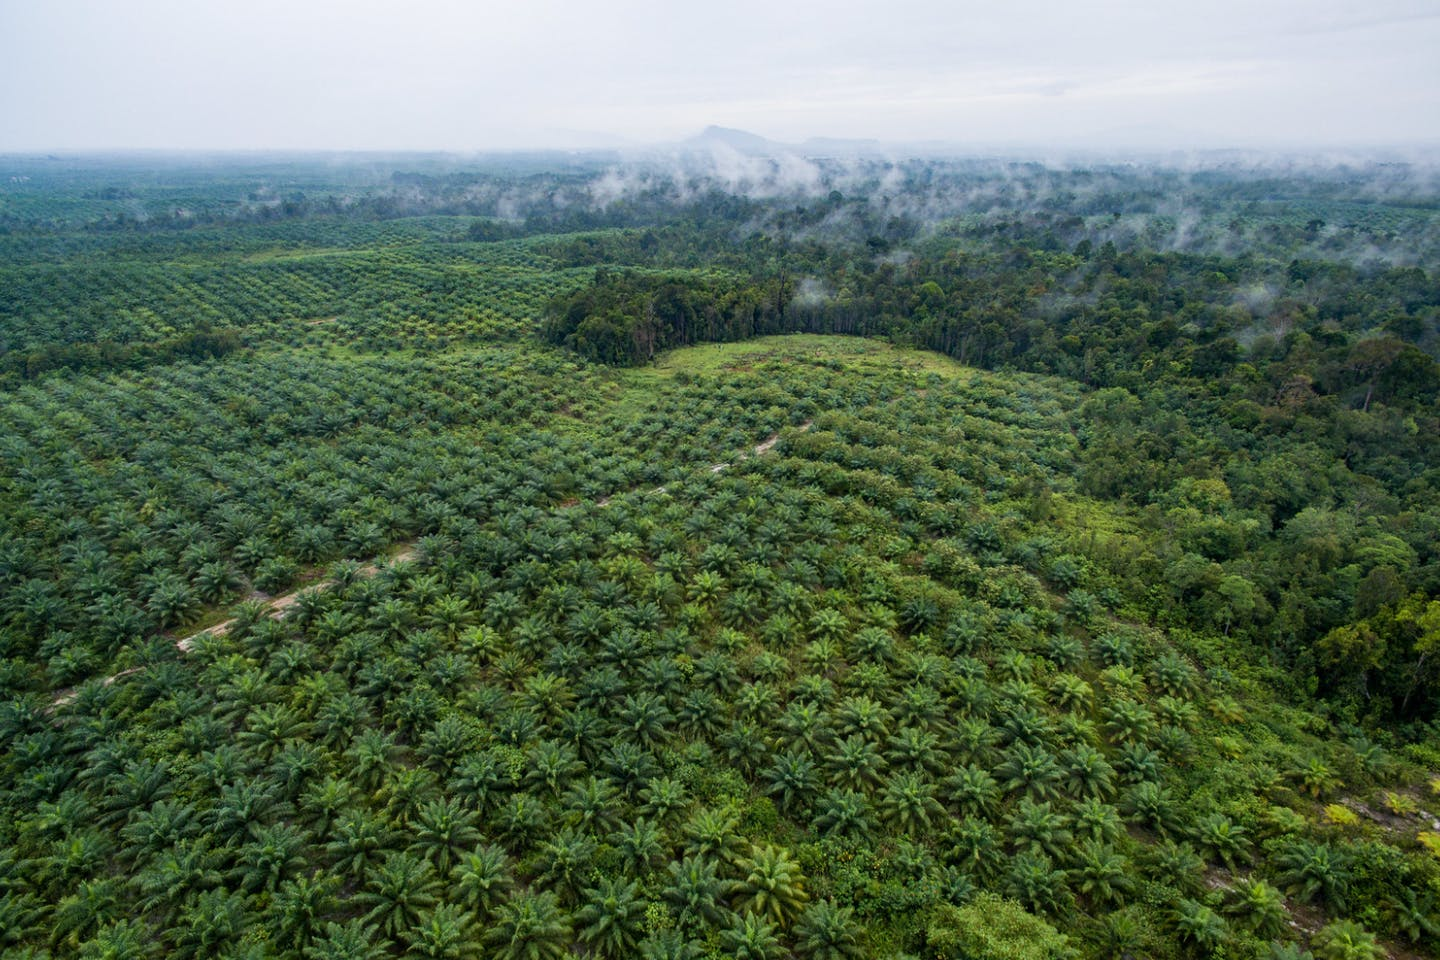 Aerial View of Palm Oil Plantation in Indonesia